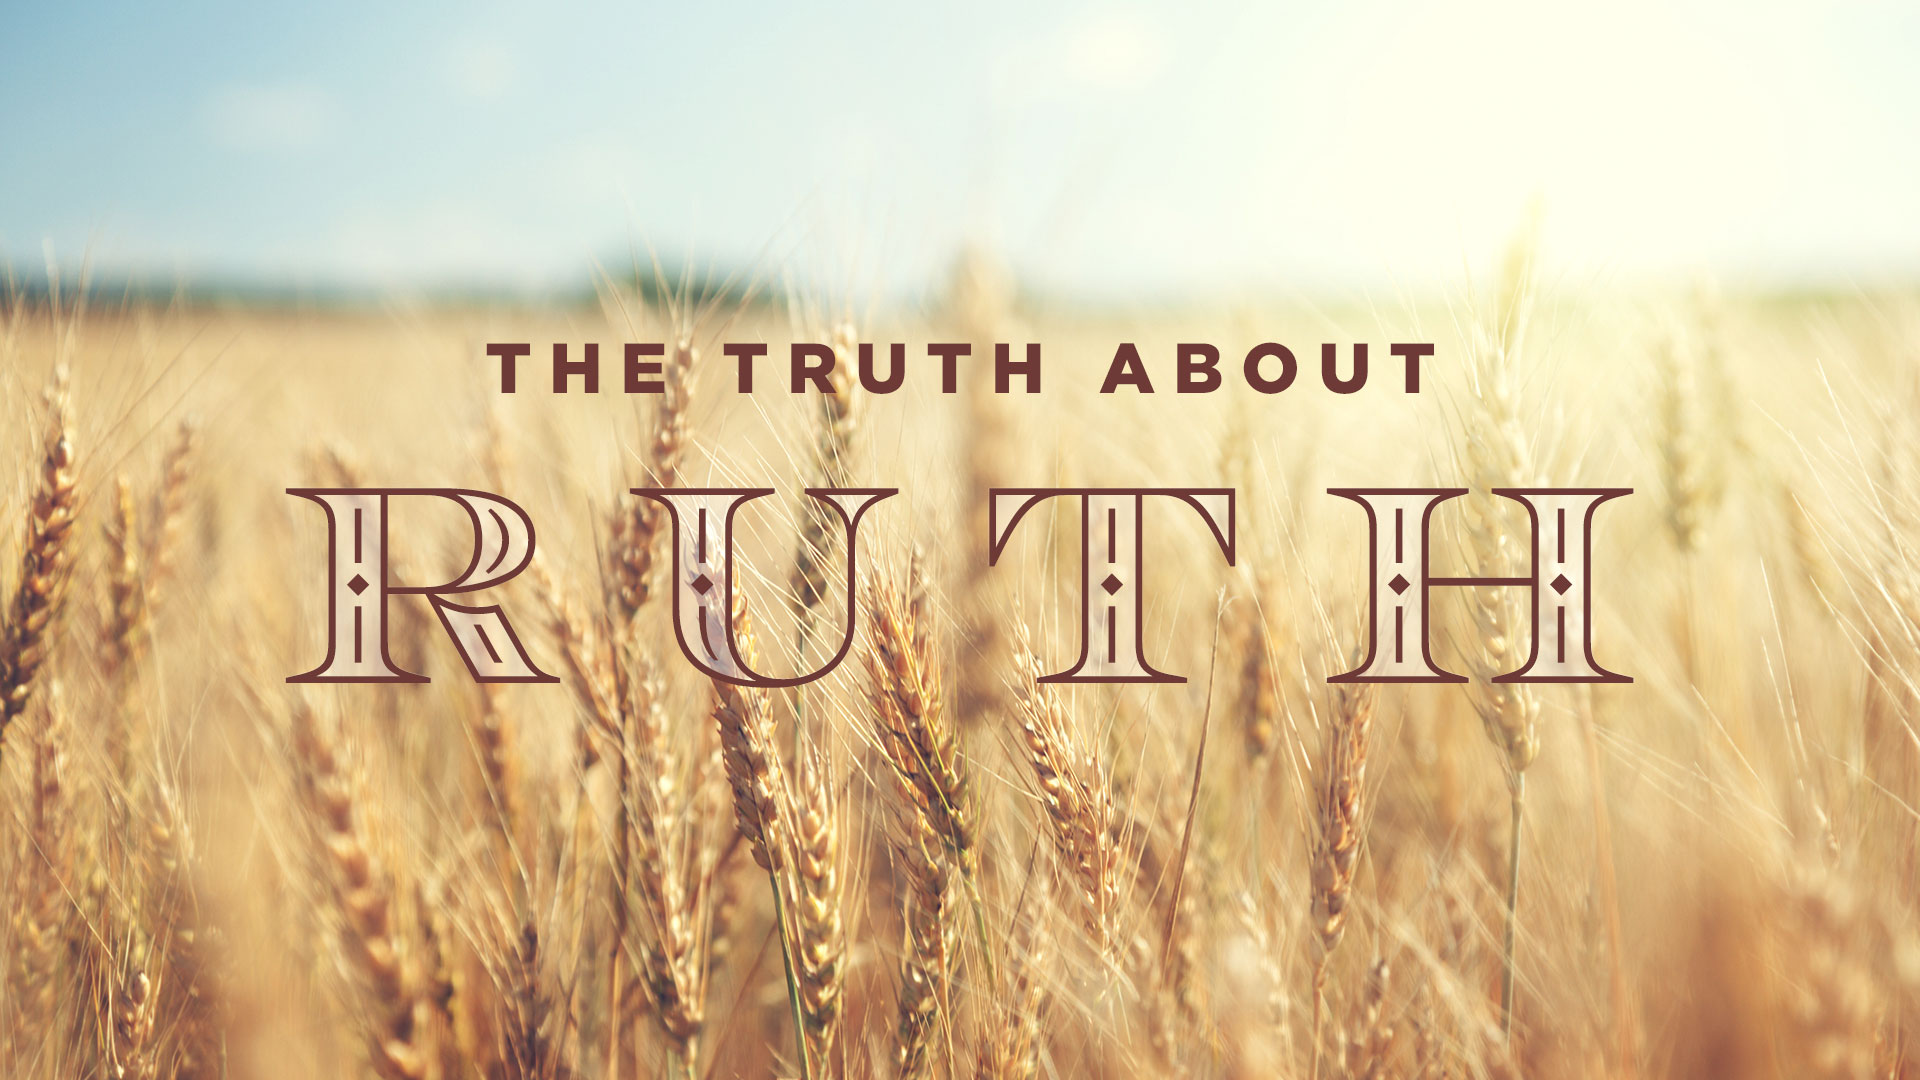 (Pt 3) Ruth and the invisible hand